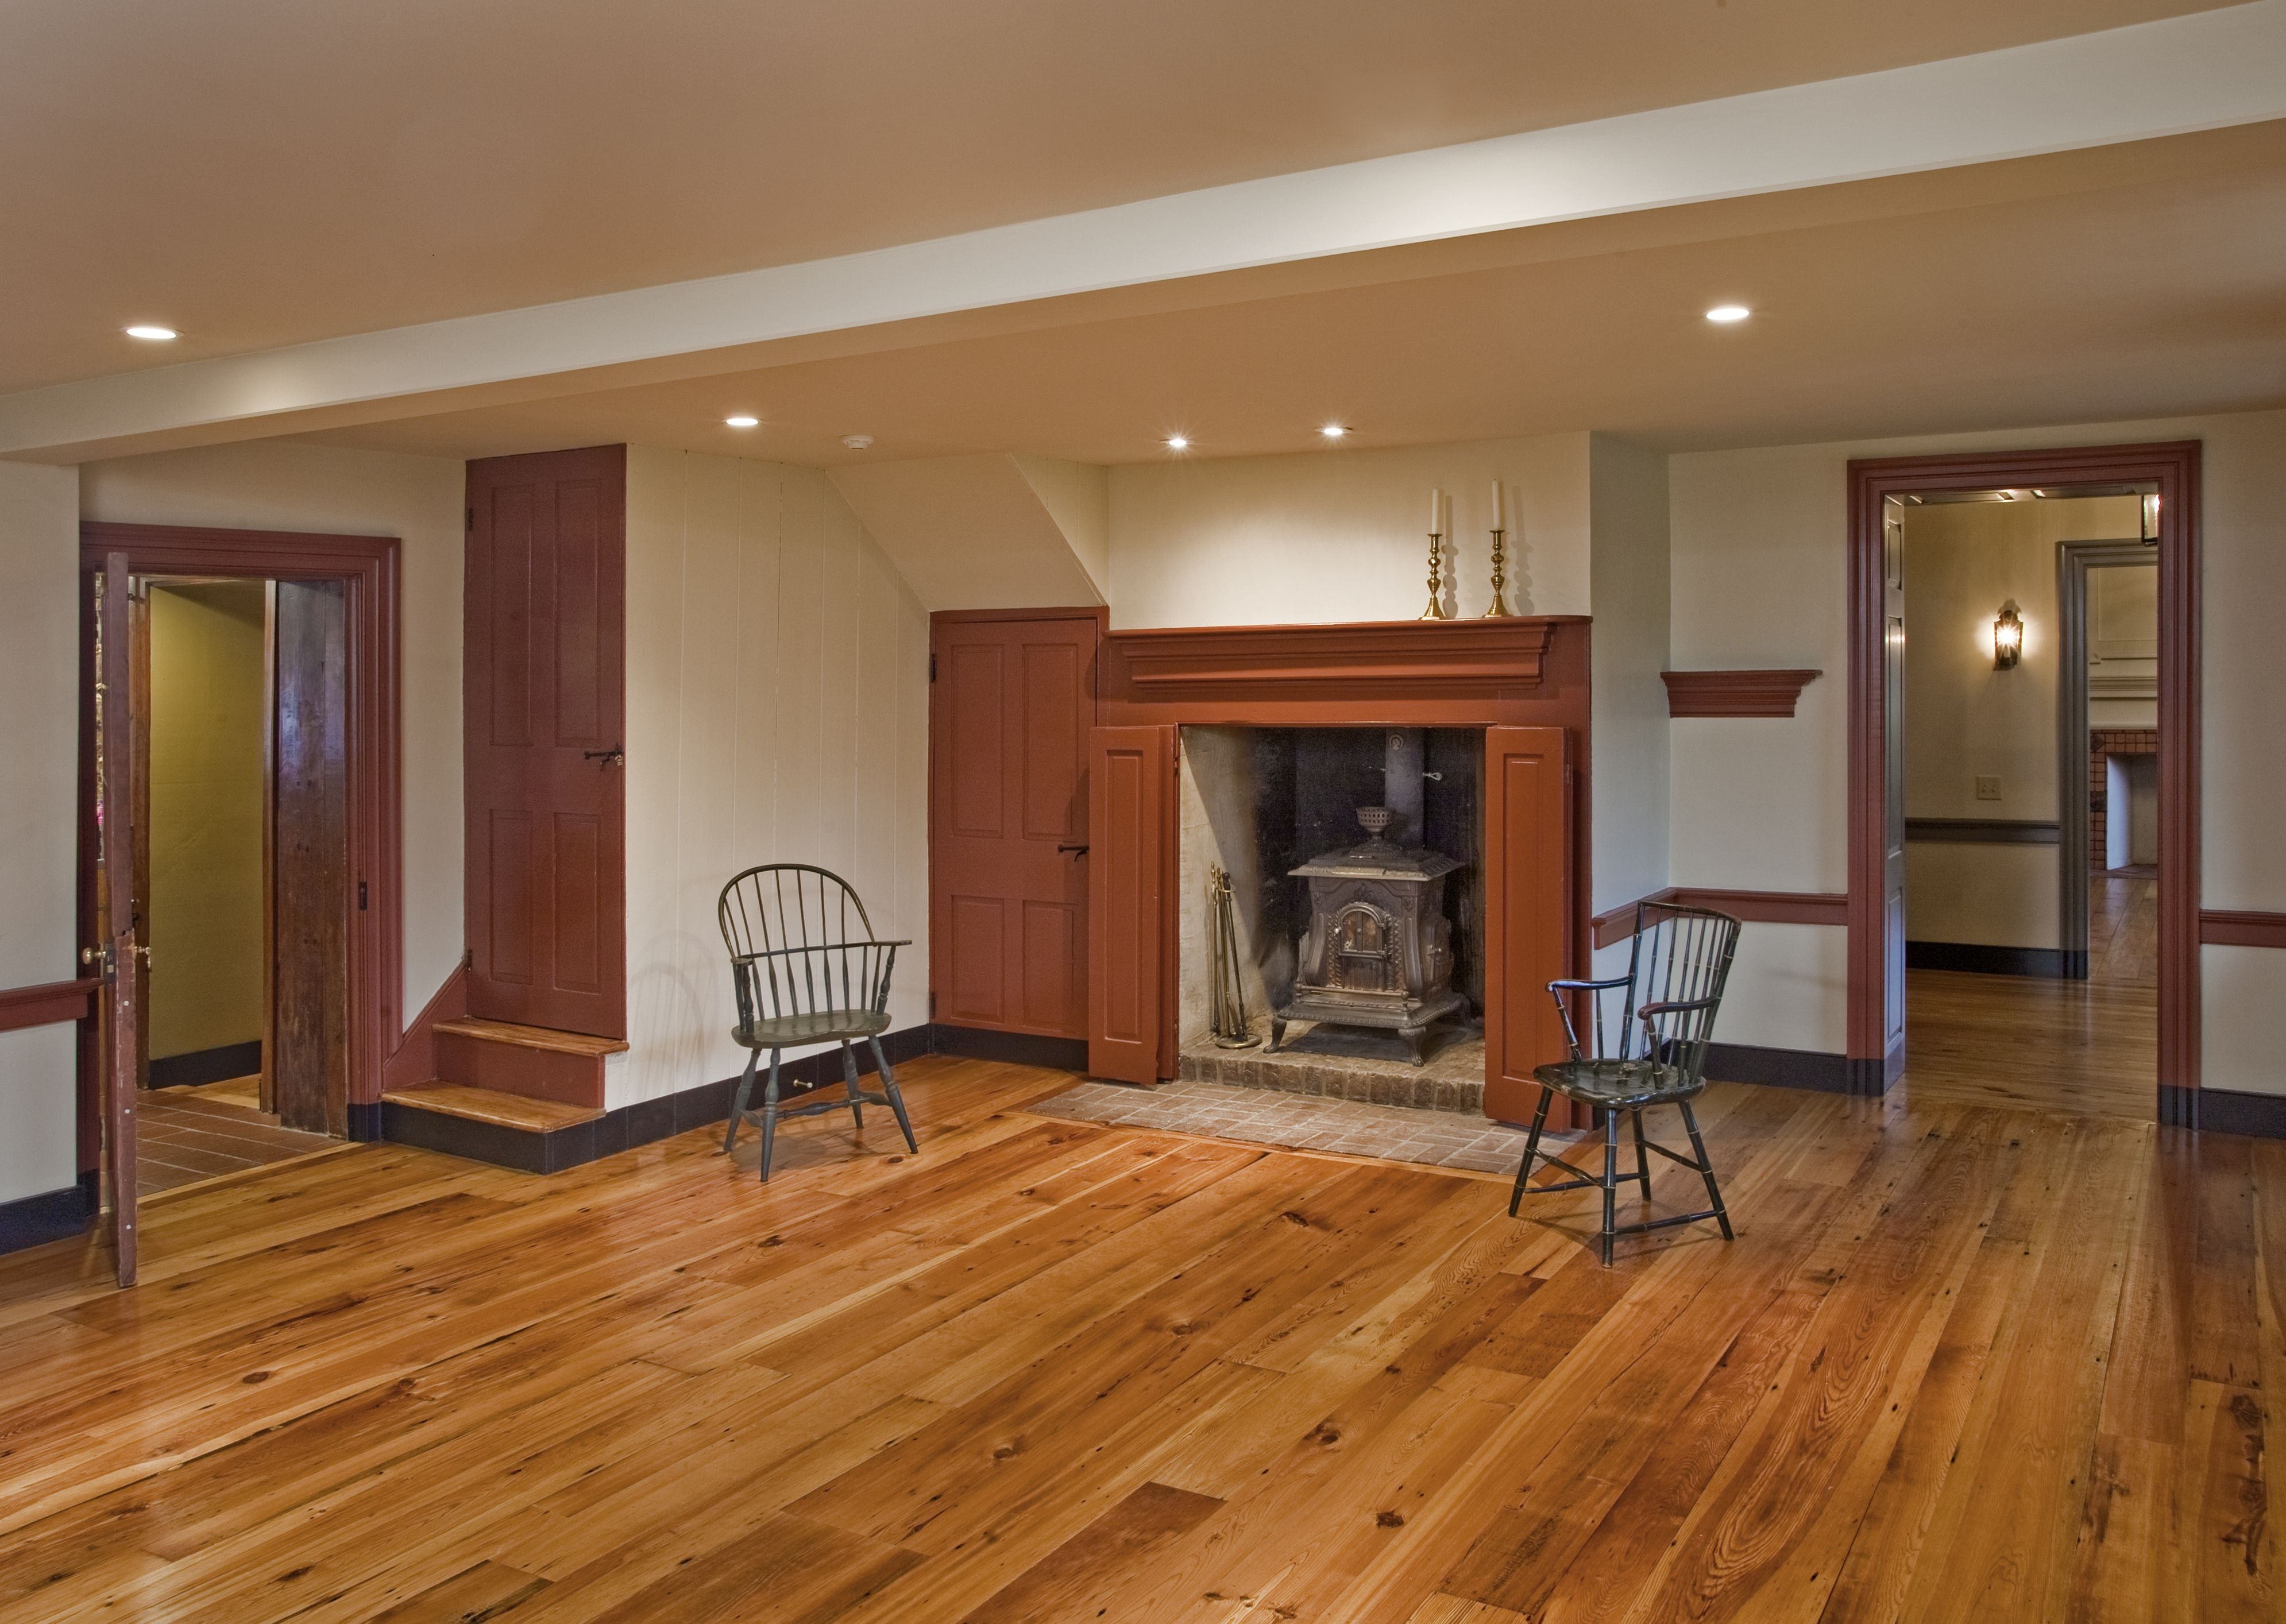 Custom Fireplace   Build your dream home, Interior remodel, Building remodeling